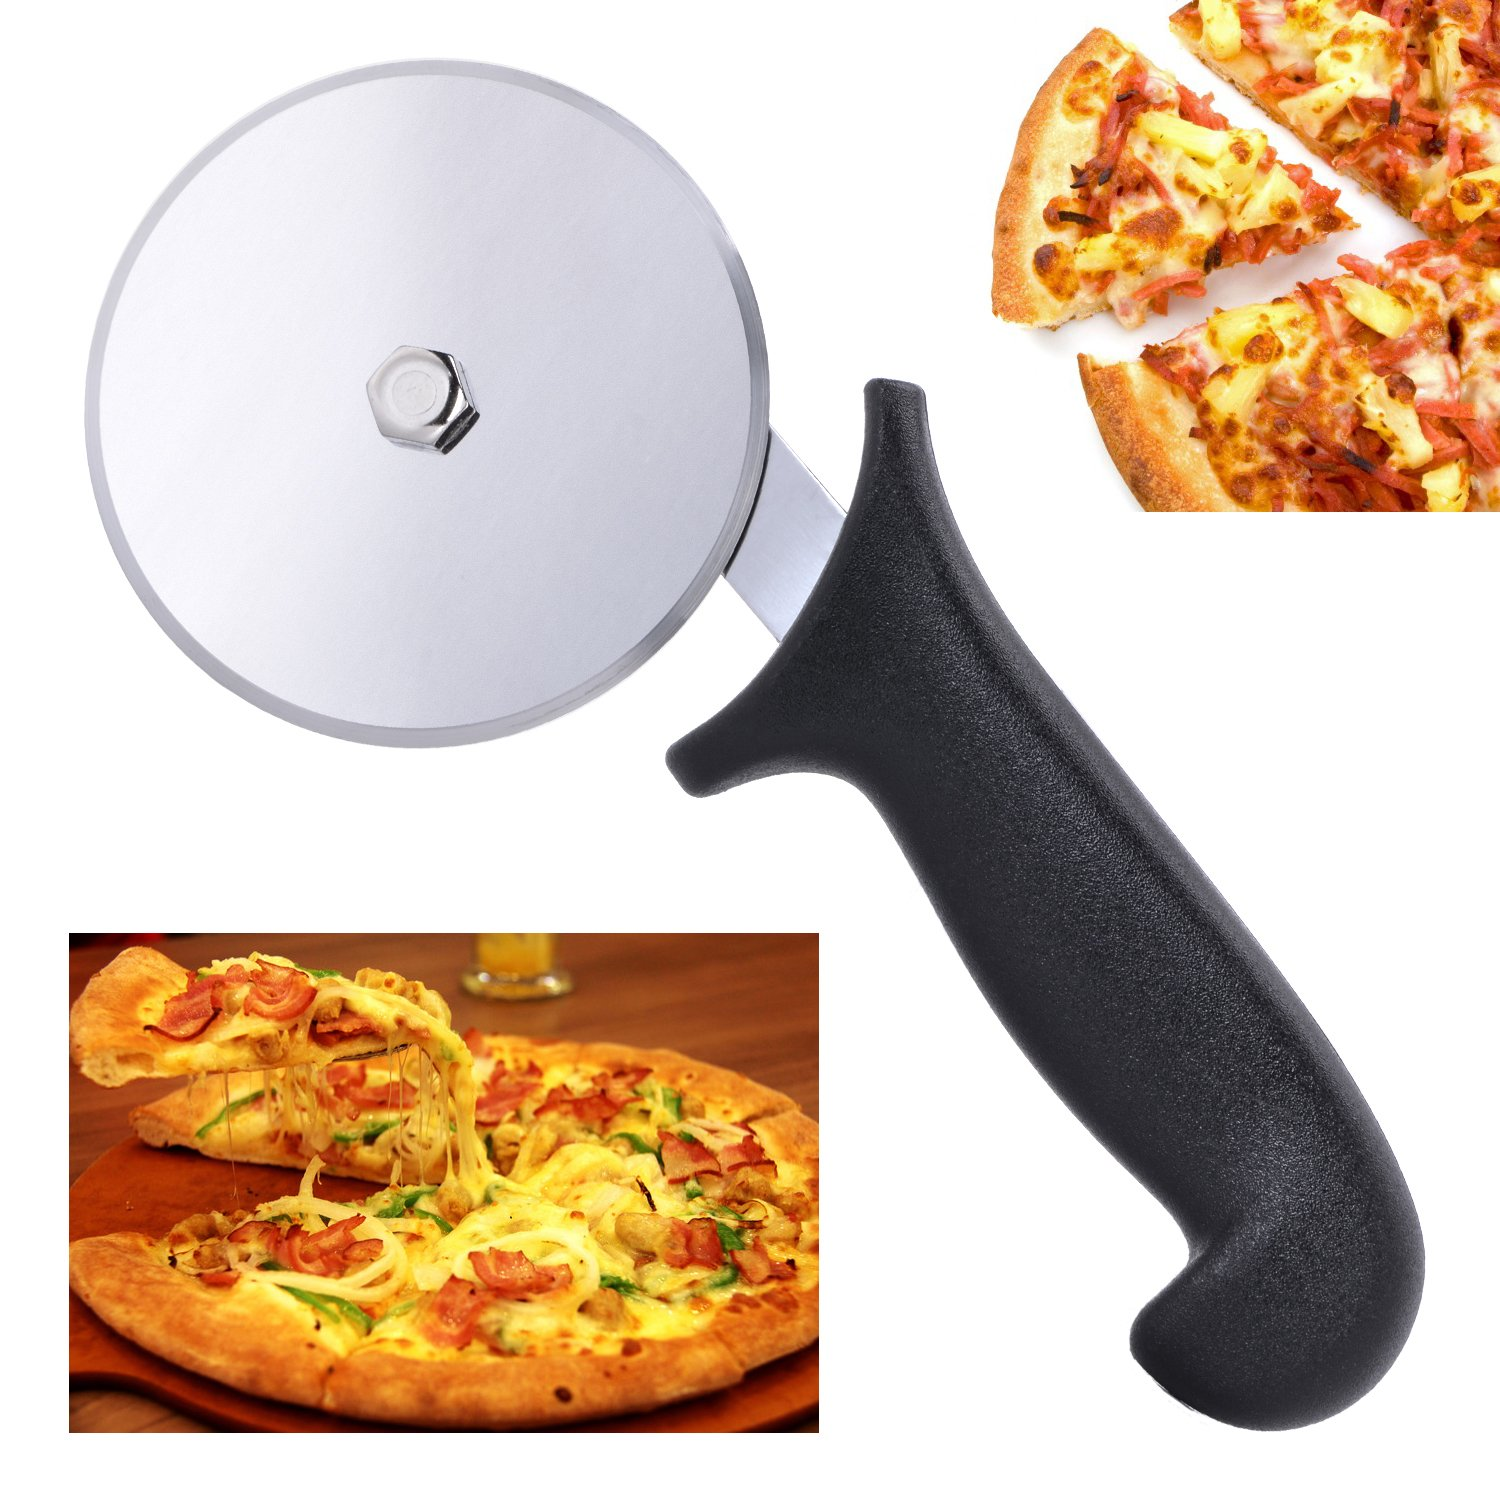 Lennov Premium Pizza Cutter, Stainless Steel Razor Sharp Wheel Slicer with Black Handle, Cuts Effectively Without Ruining Your Toppings, for Home Kitchen and Professional Use